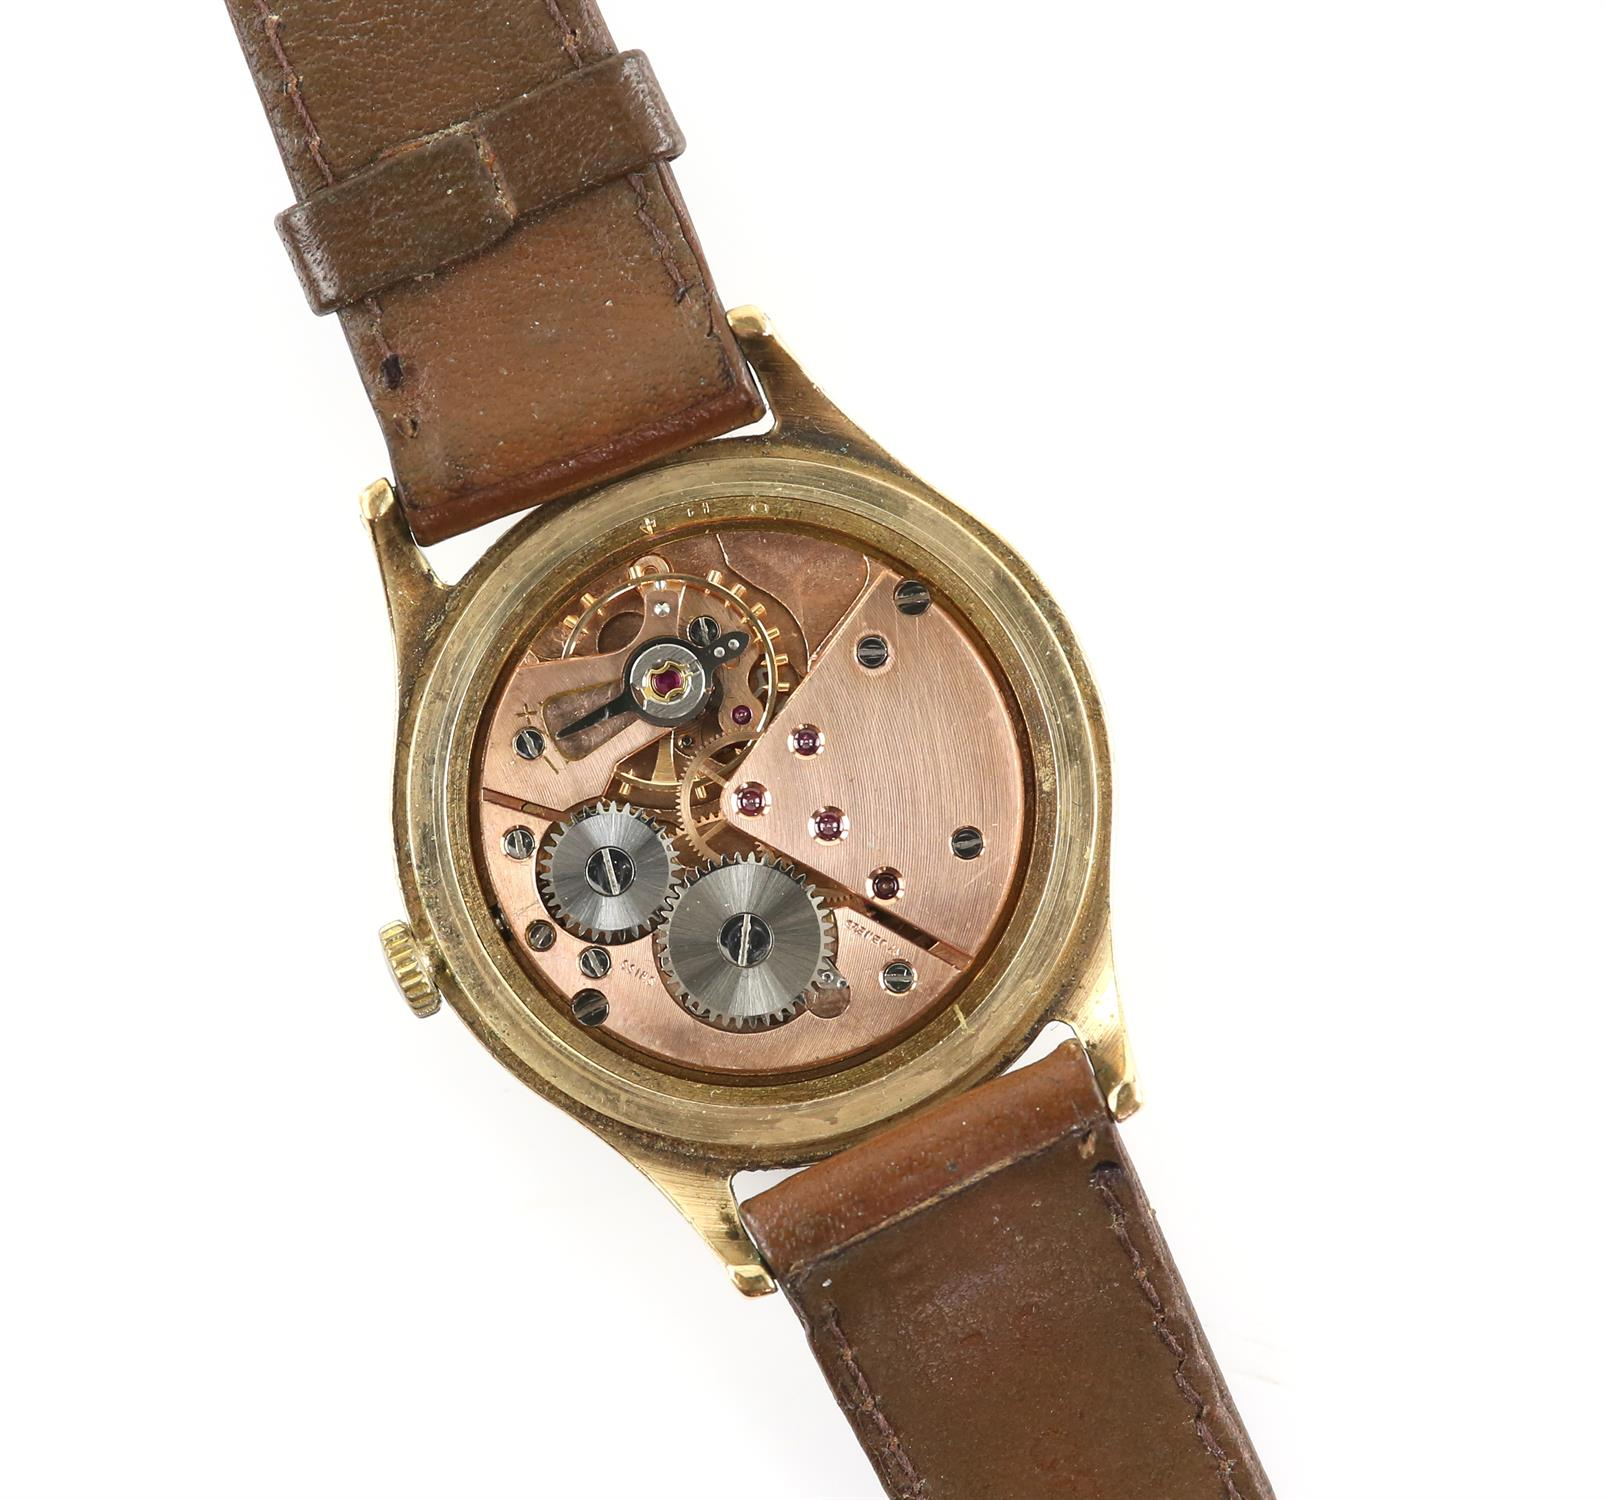 Baume gentleman's gold wristwatch, signed dial with baton and Arabic numeral hour markers - Image 2 of 2